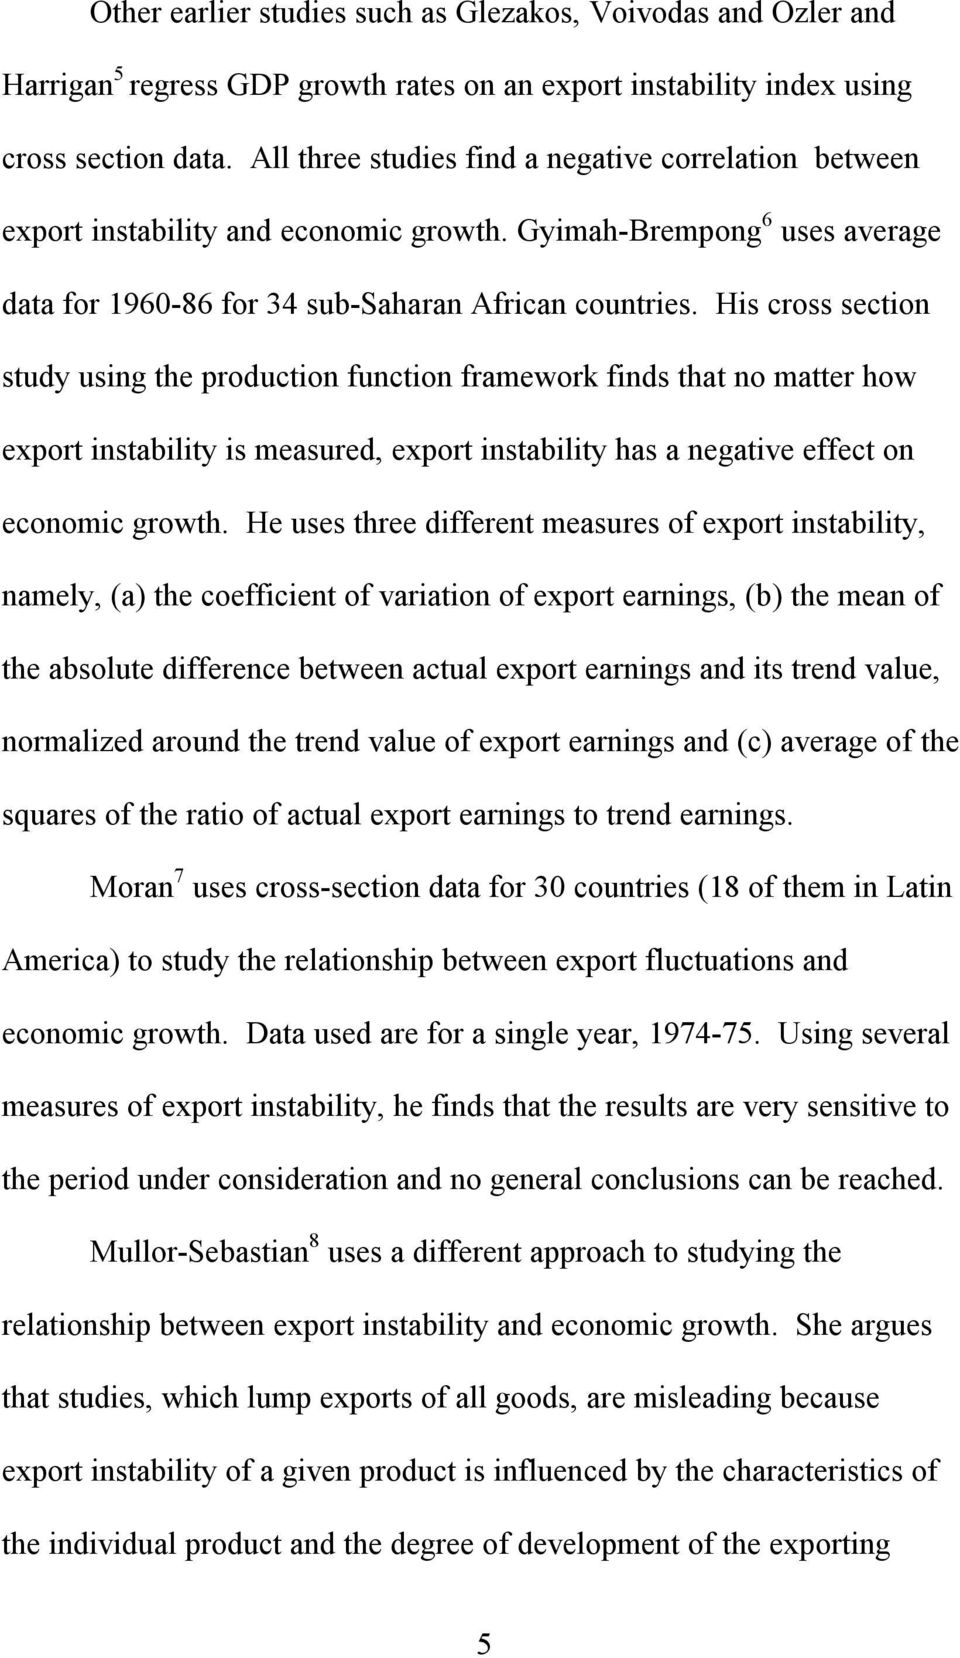 His cross section study using the production function framework finds that no matter how export instability is measured, export instability has a negative effect on economic growth.